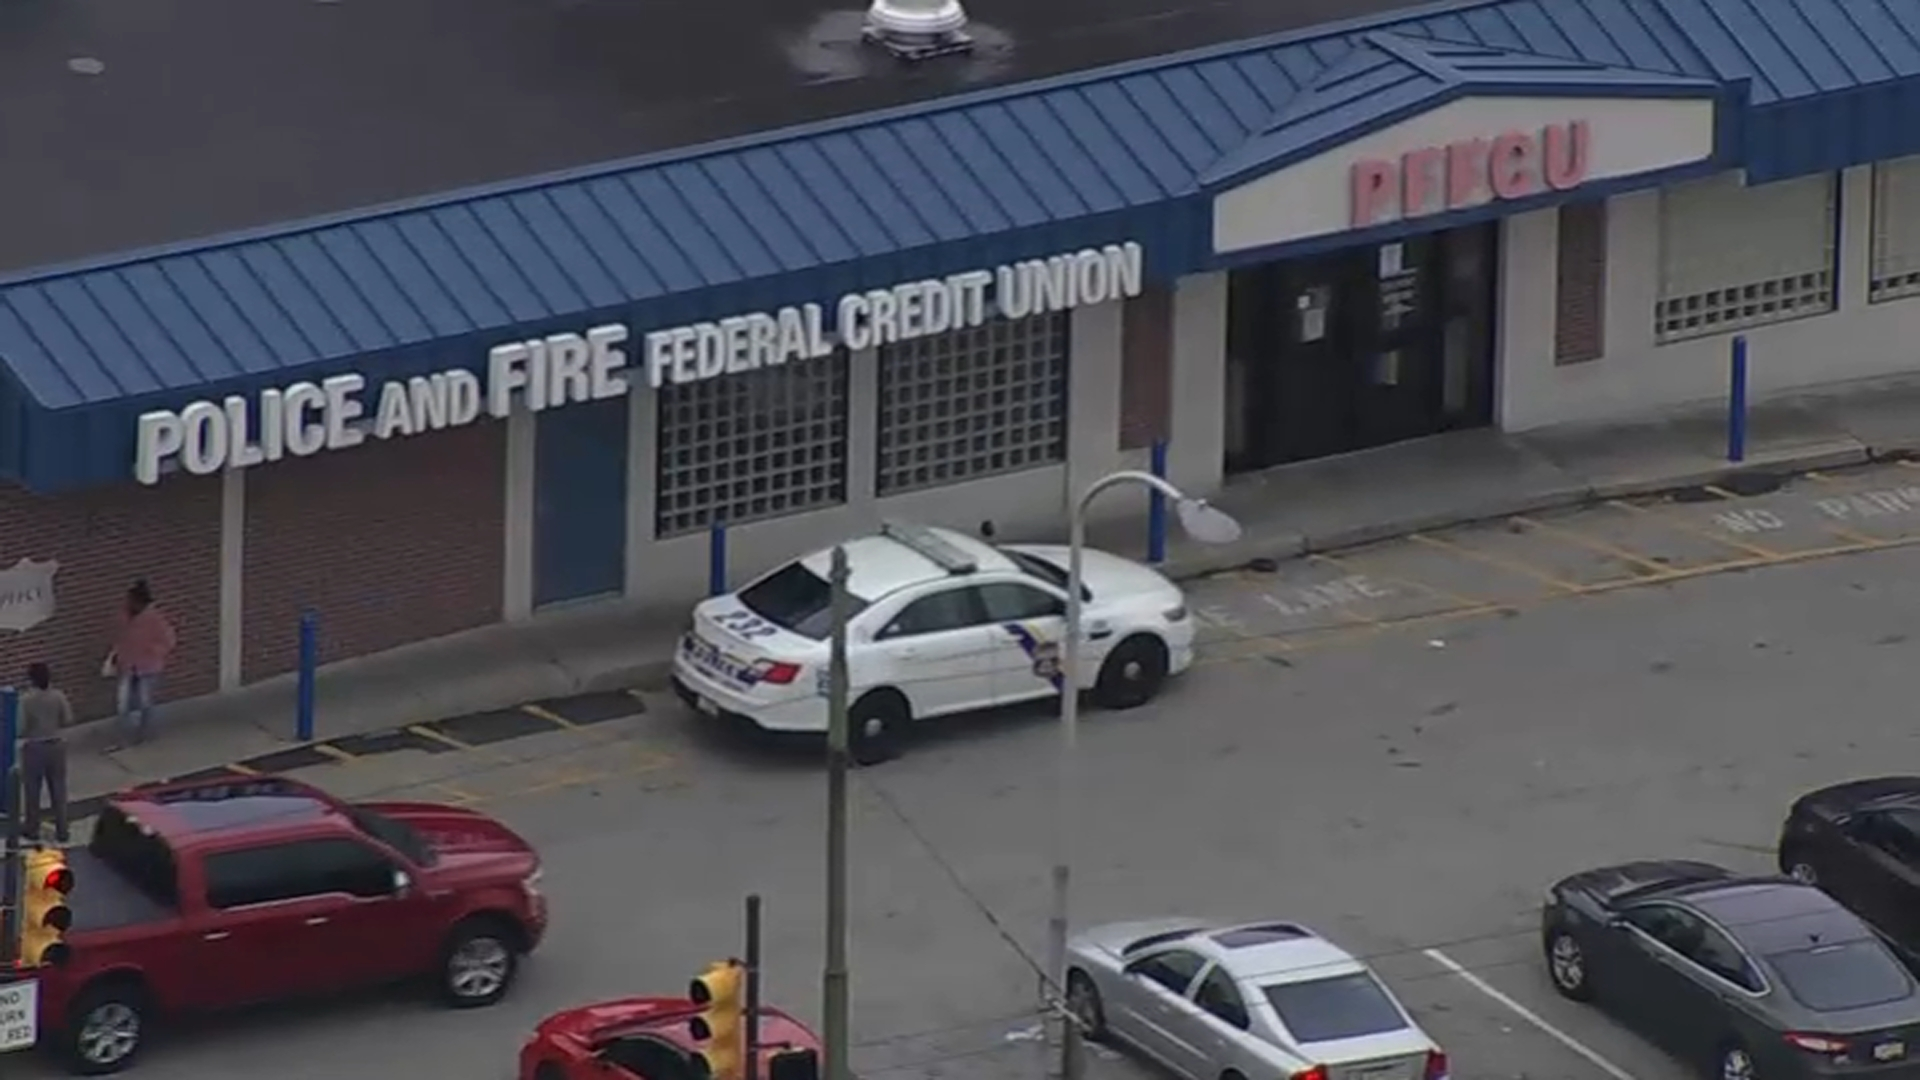 Philly Officer, Detective Injured During Incident Inside Police and Fire Federal Credit Union